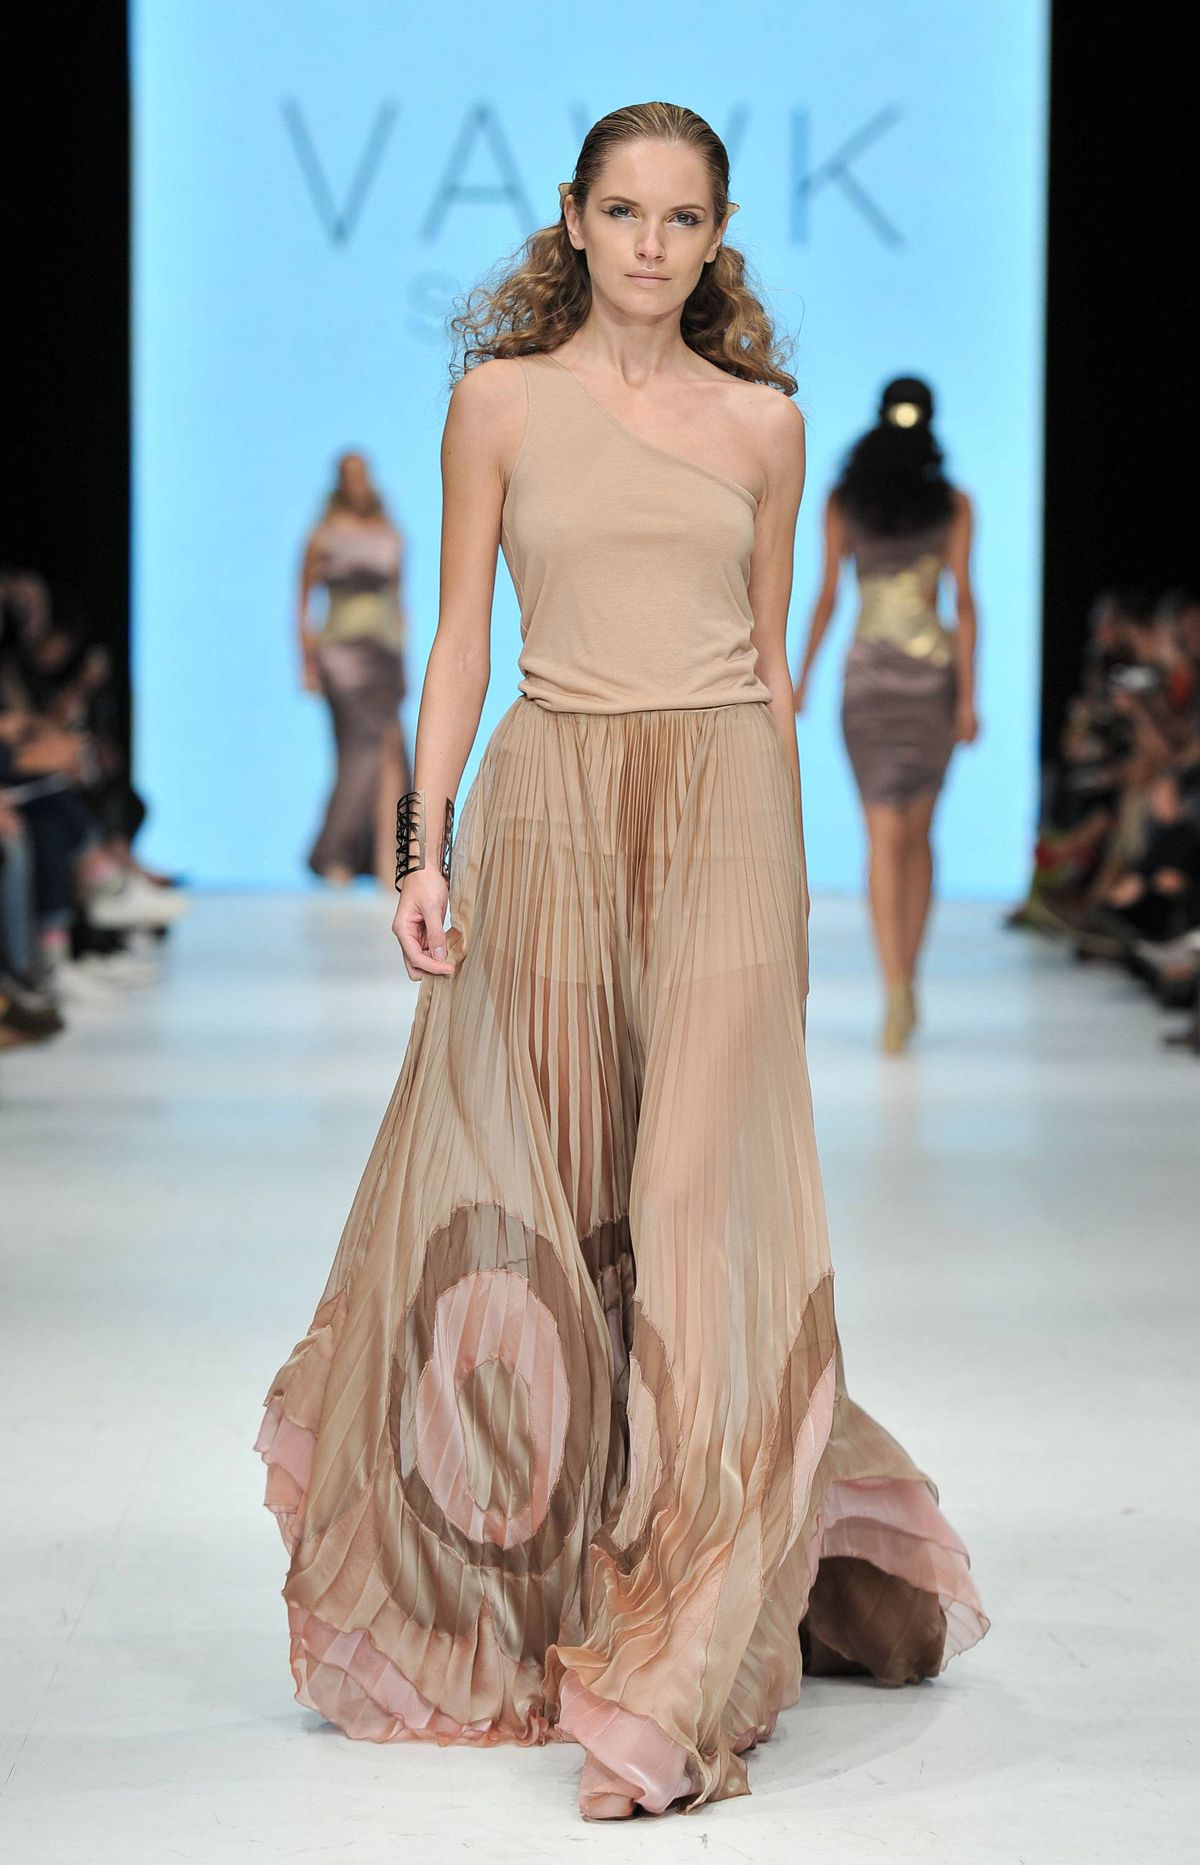 We smell competition for Greta Constantine: Vawk's spring collection was an elegant showing of high-glam evening wear in the softest combinations of muted gold, pale pink and sweet, mellow caramel.